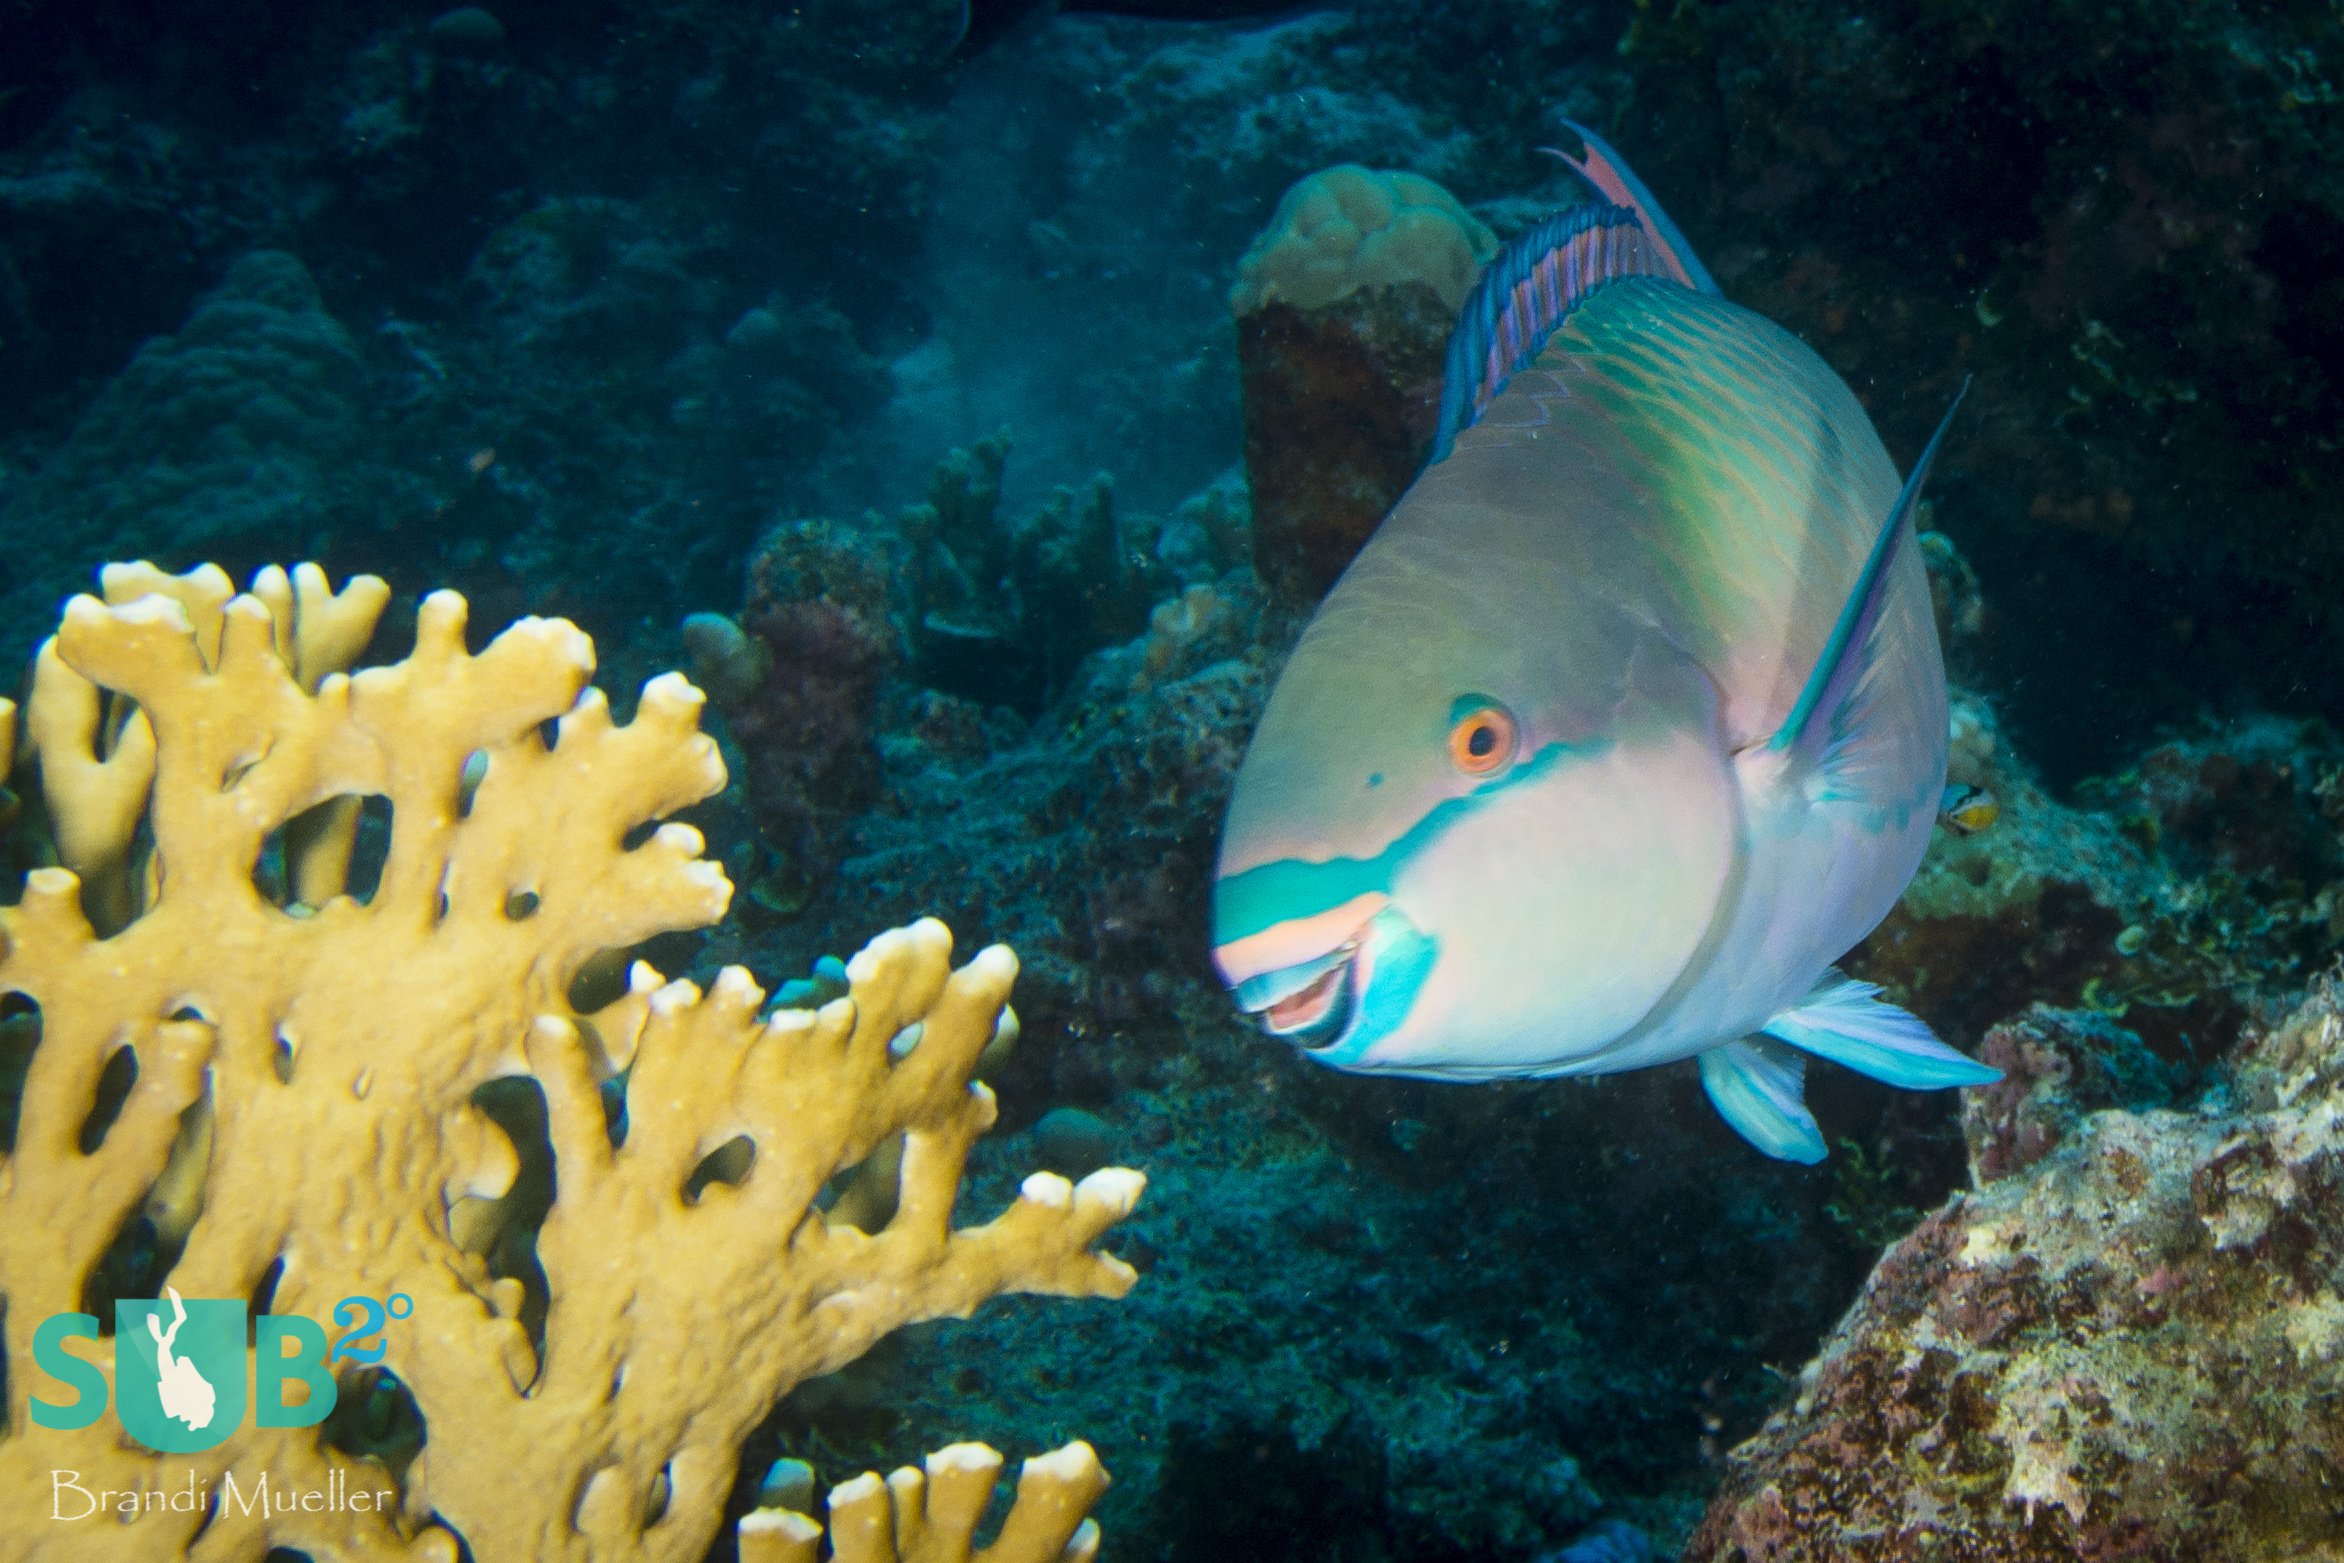 This parrotfish was about to take a bite of the coral, although parrotfish do not eat the coral for nutrition.  They feed on the algae that is growing on the coral.